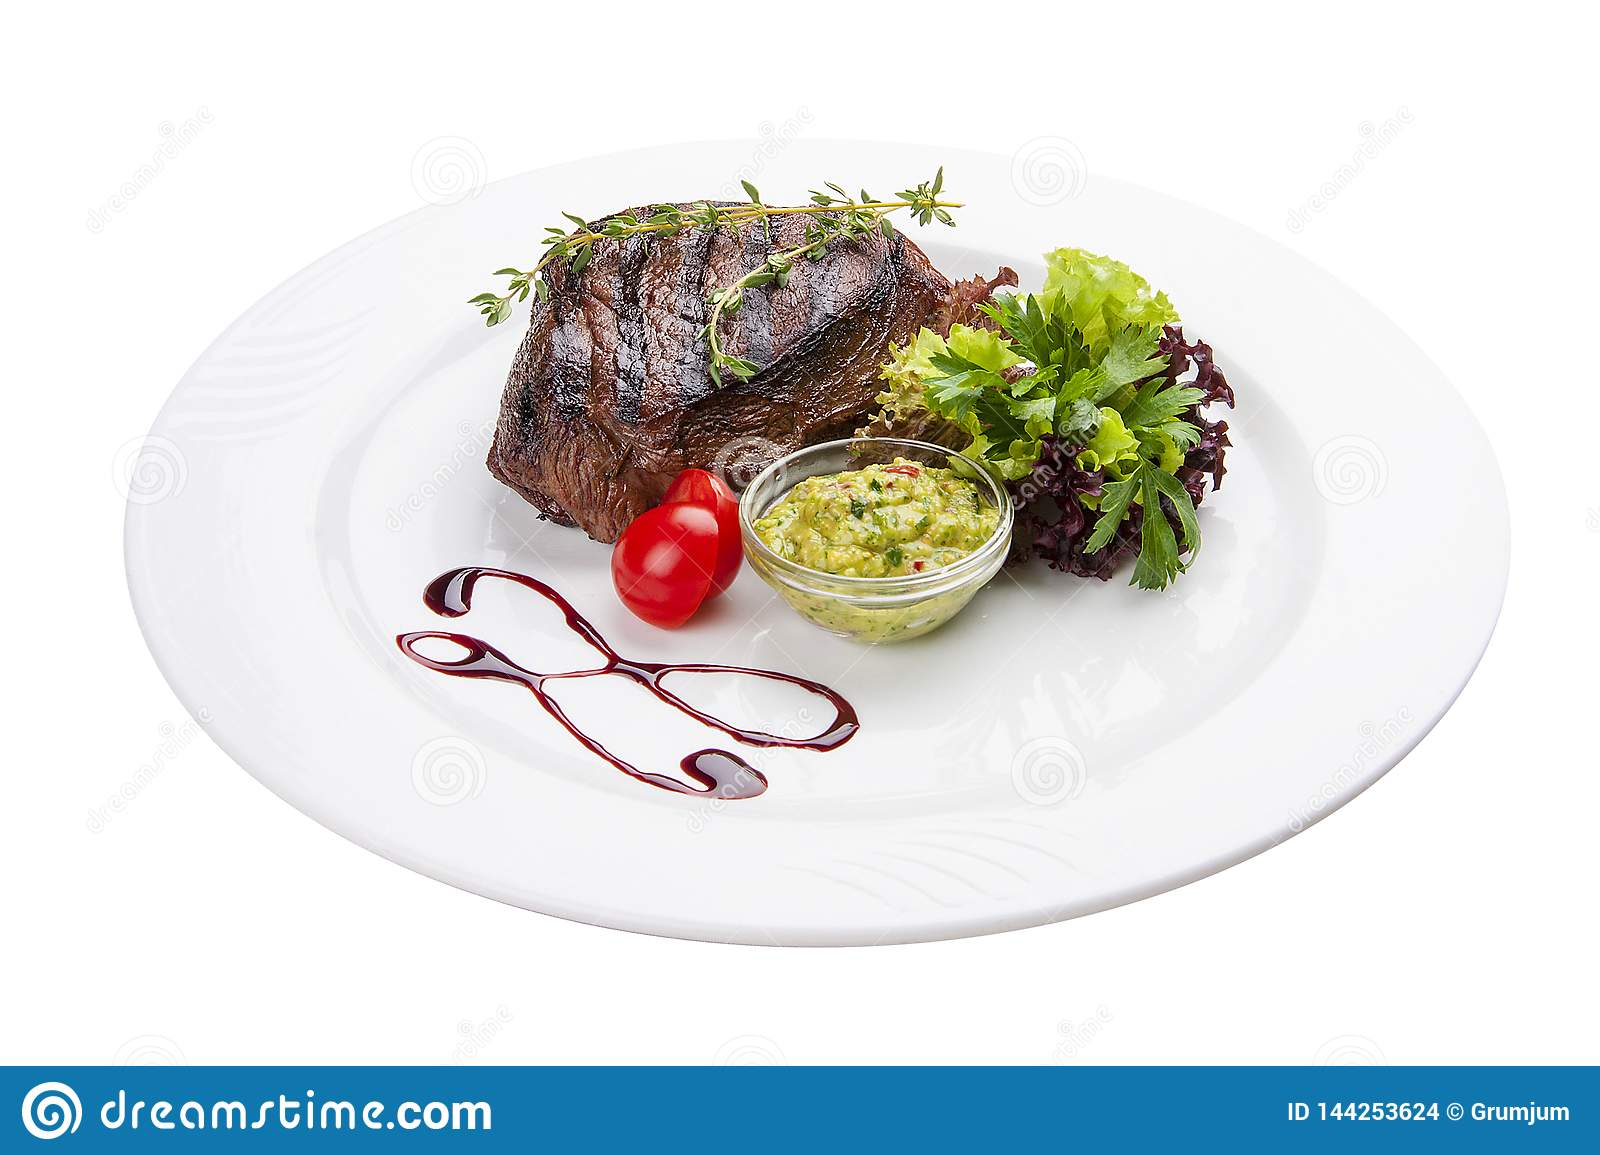 Beef steak with Guacamole sauce. On a white plate